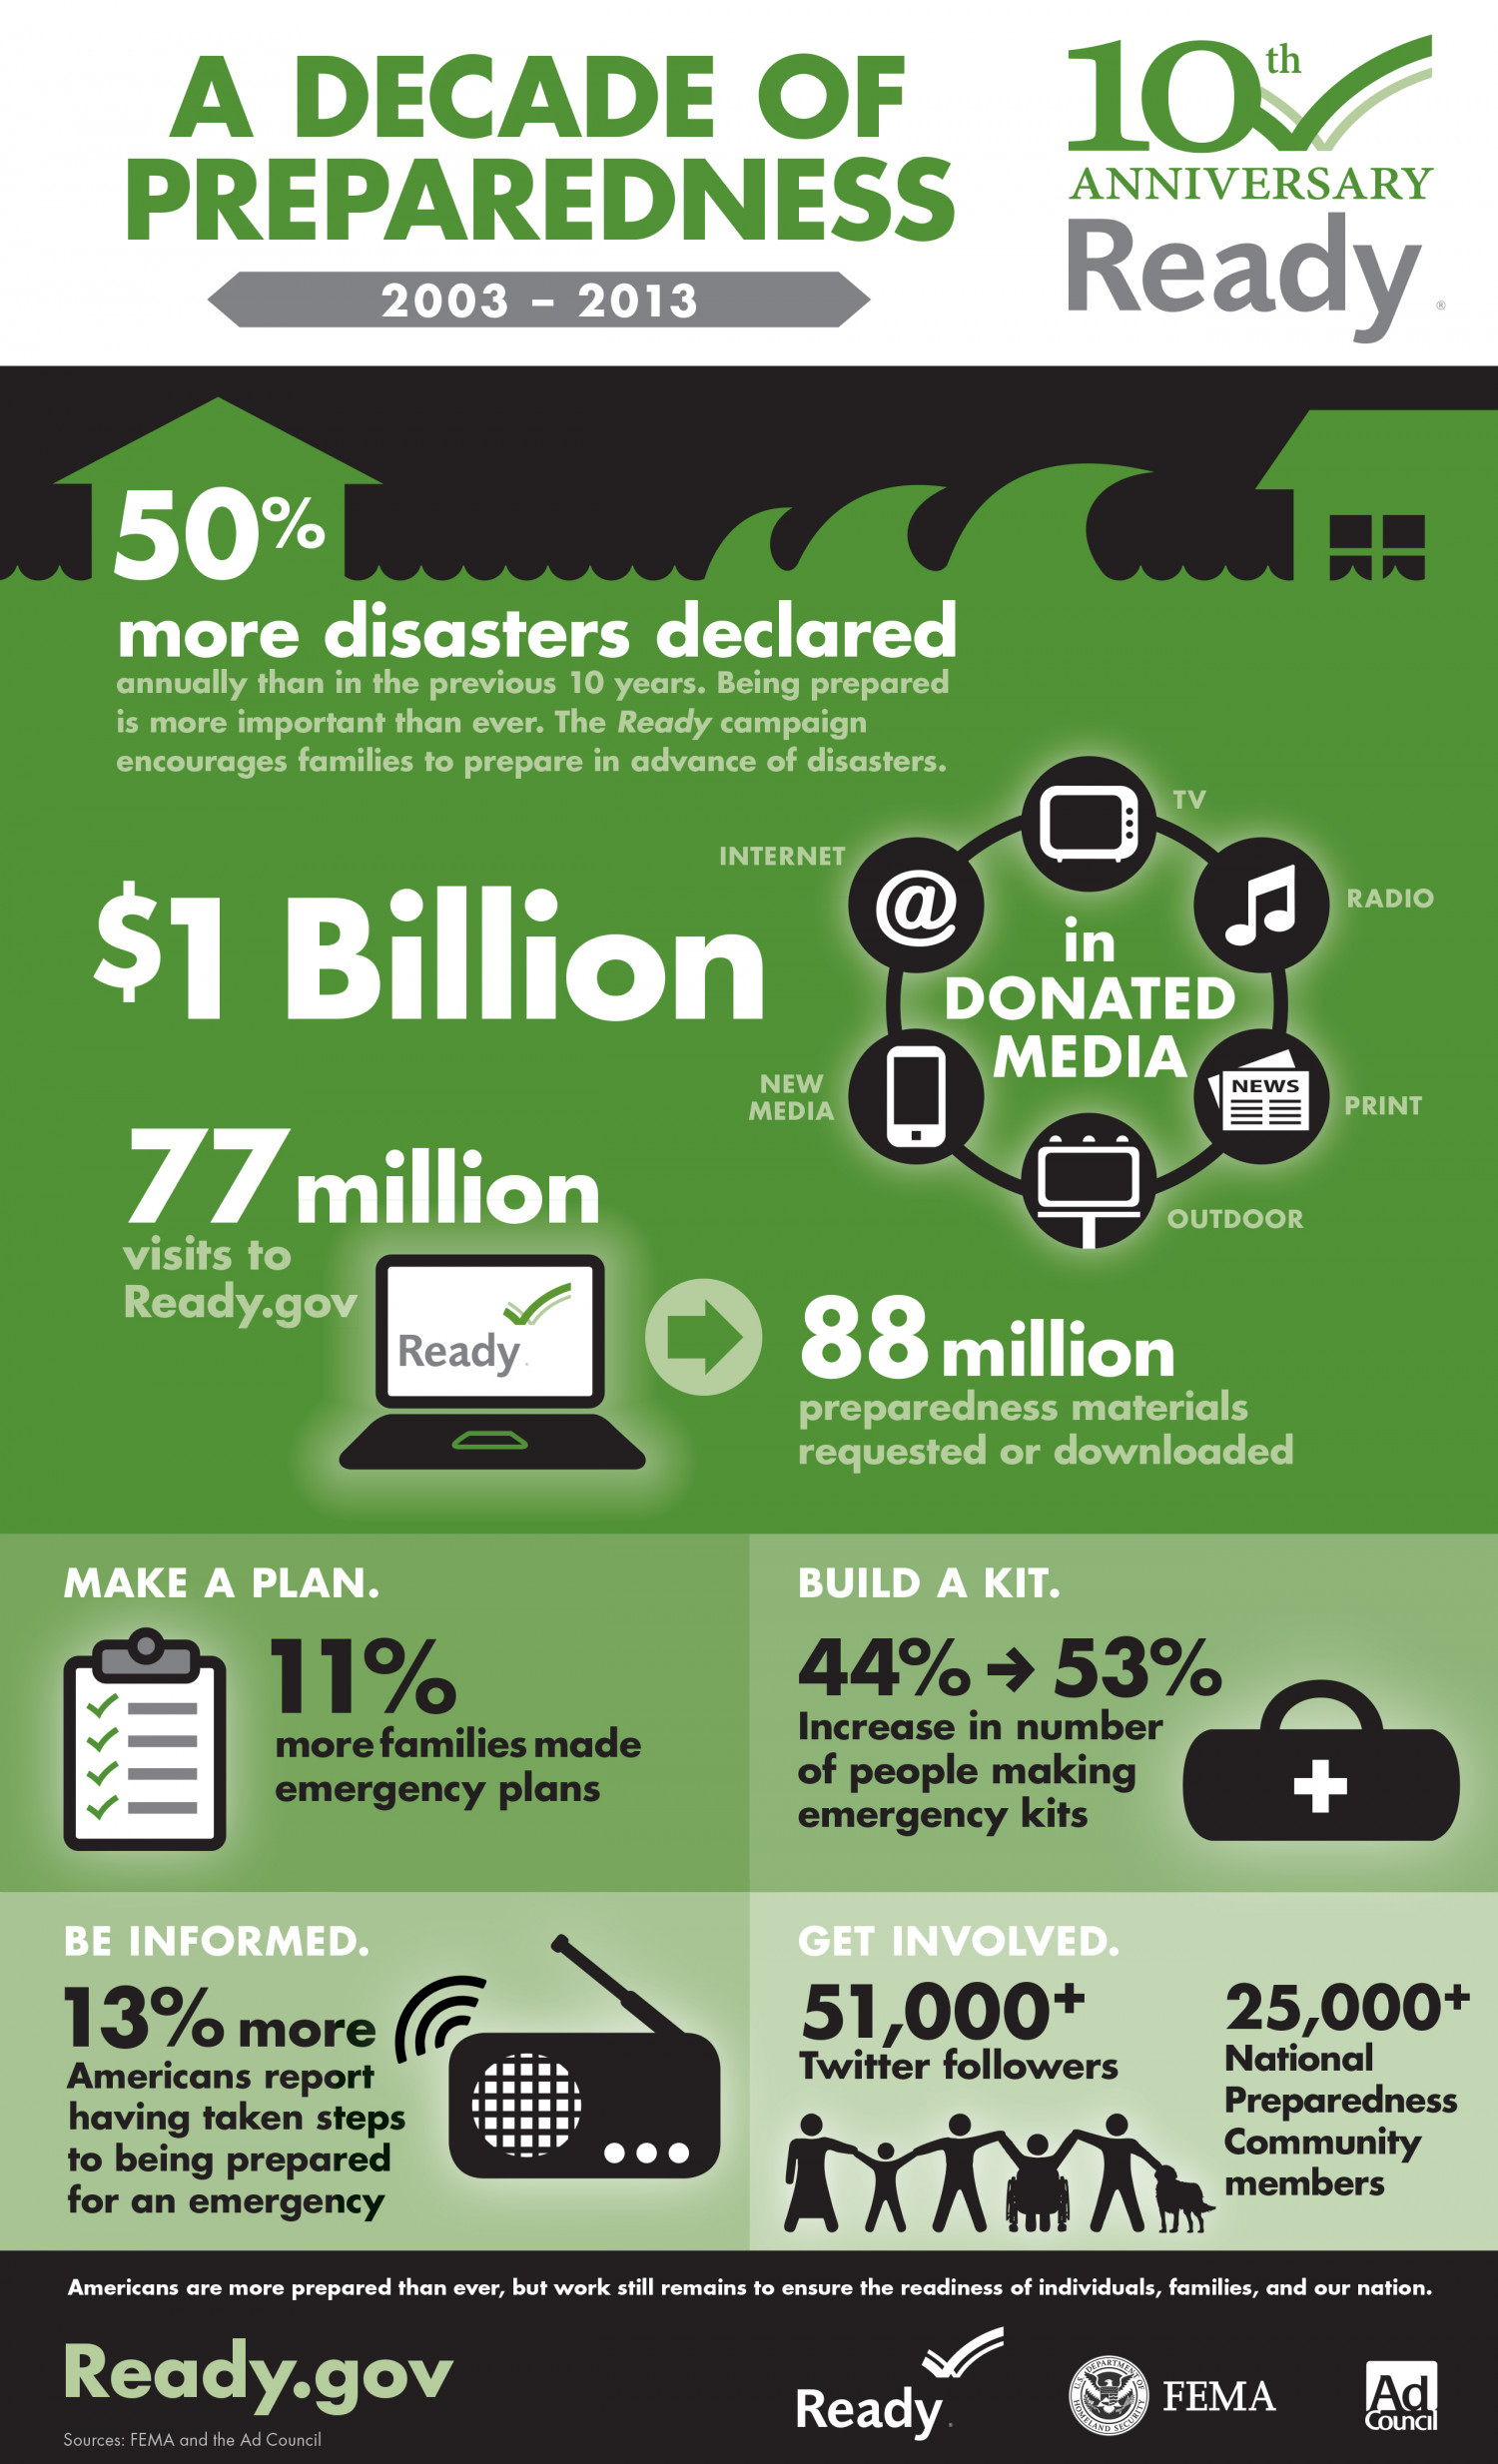 A Decade of Preparedness Infographic